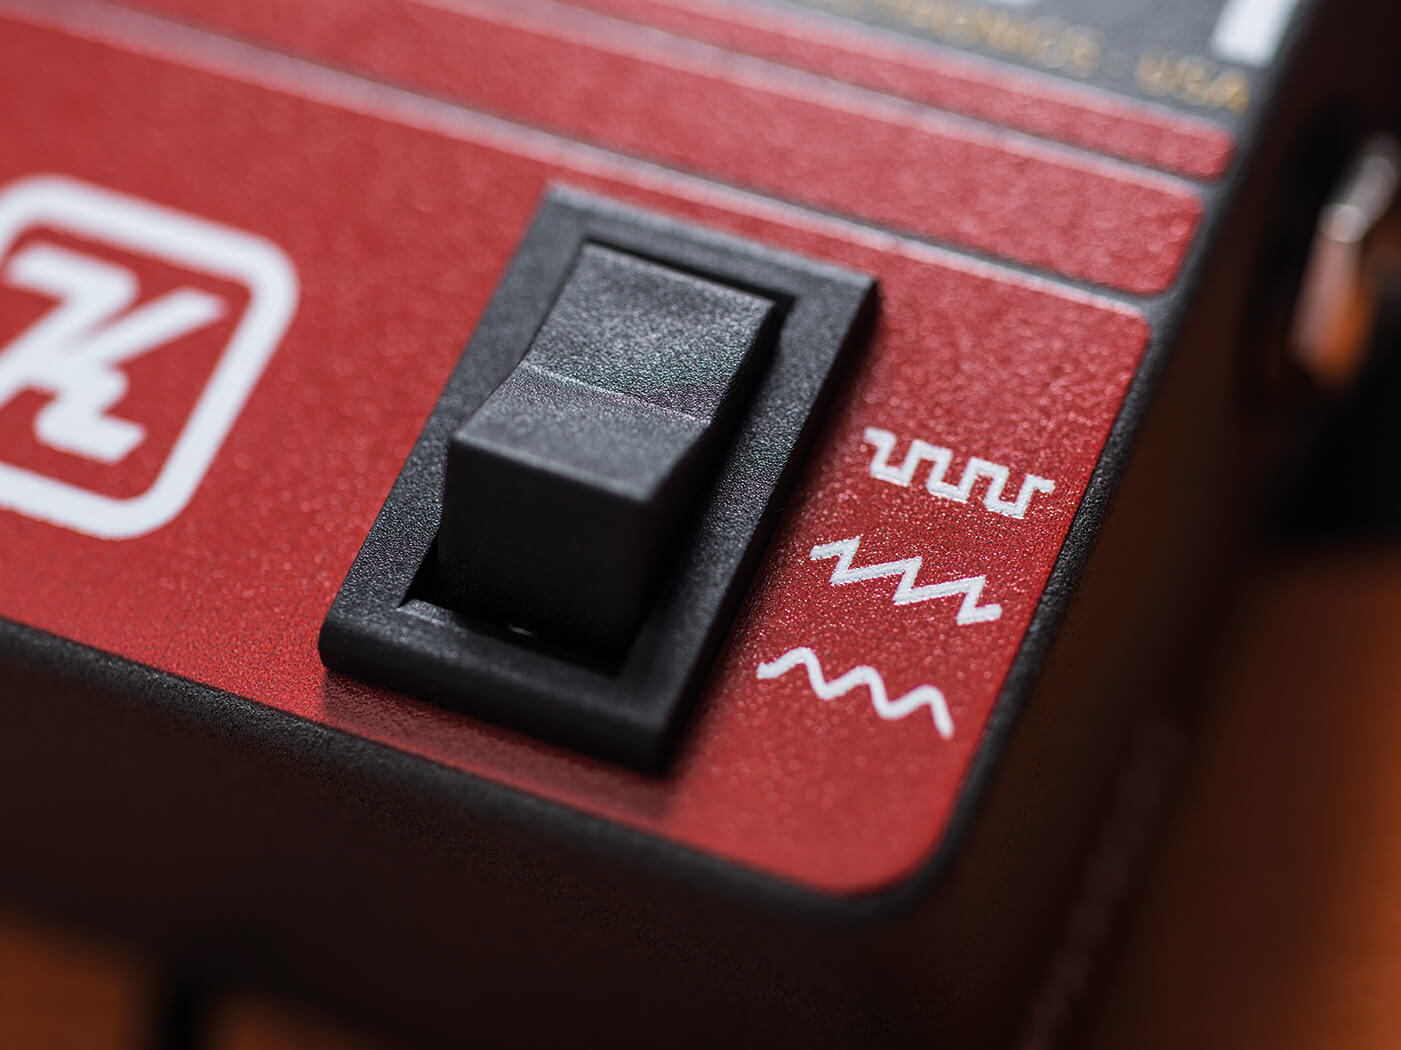 Review Keeley Synth-1 waveform switch